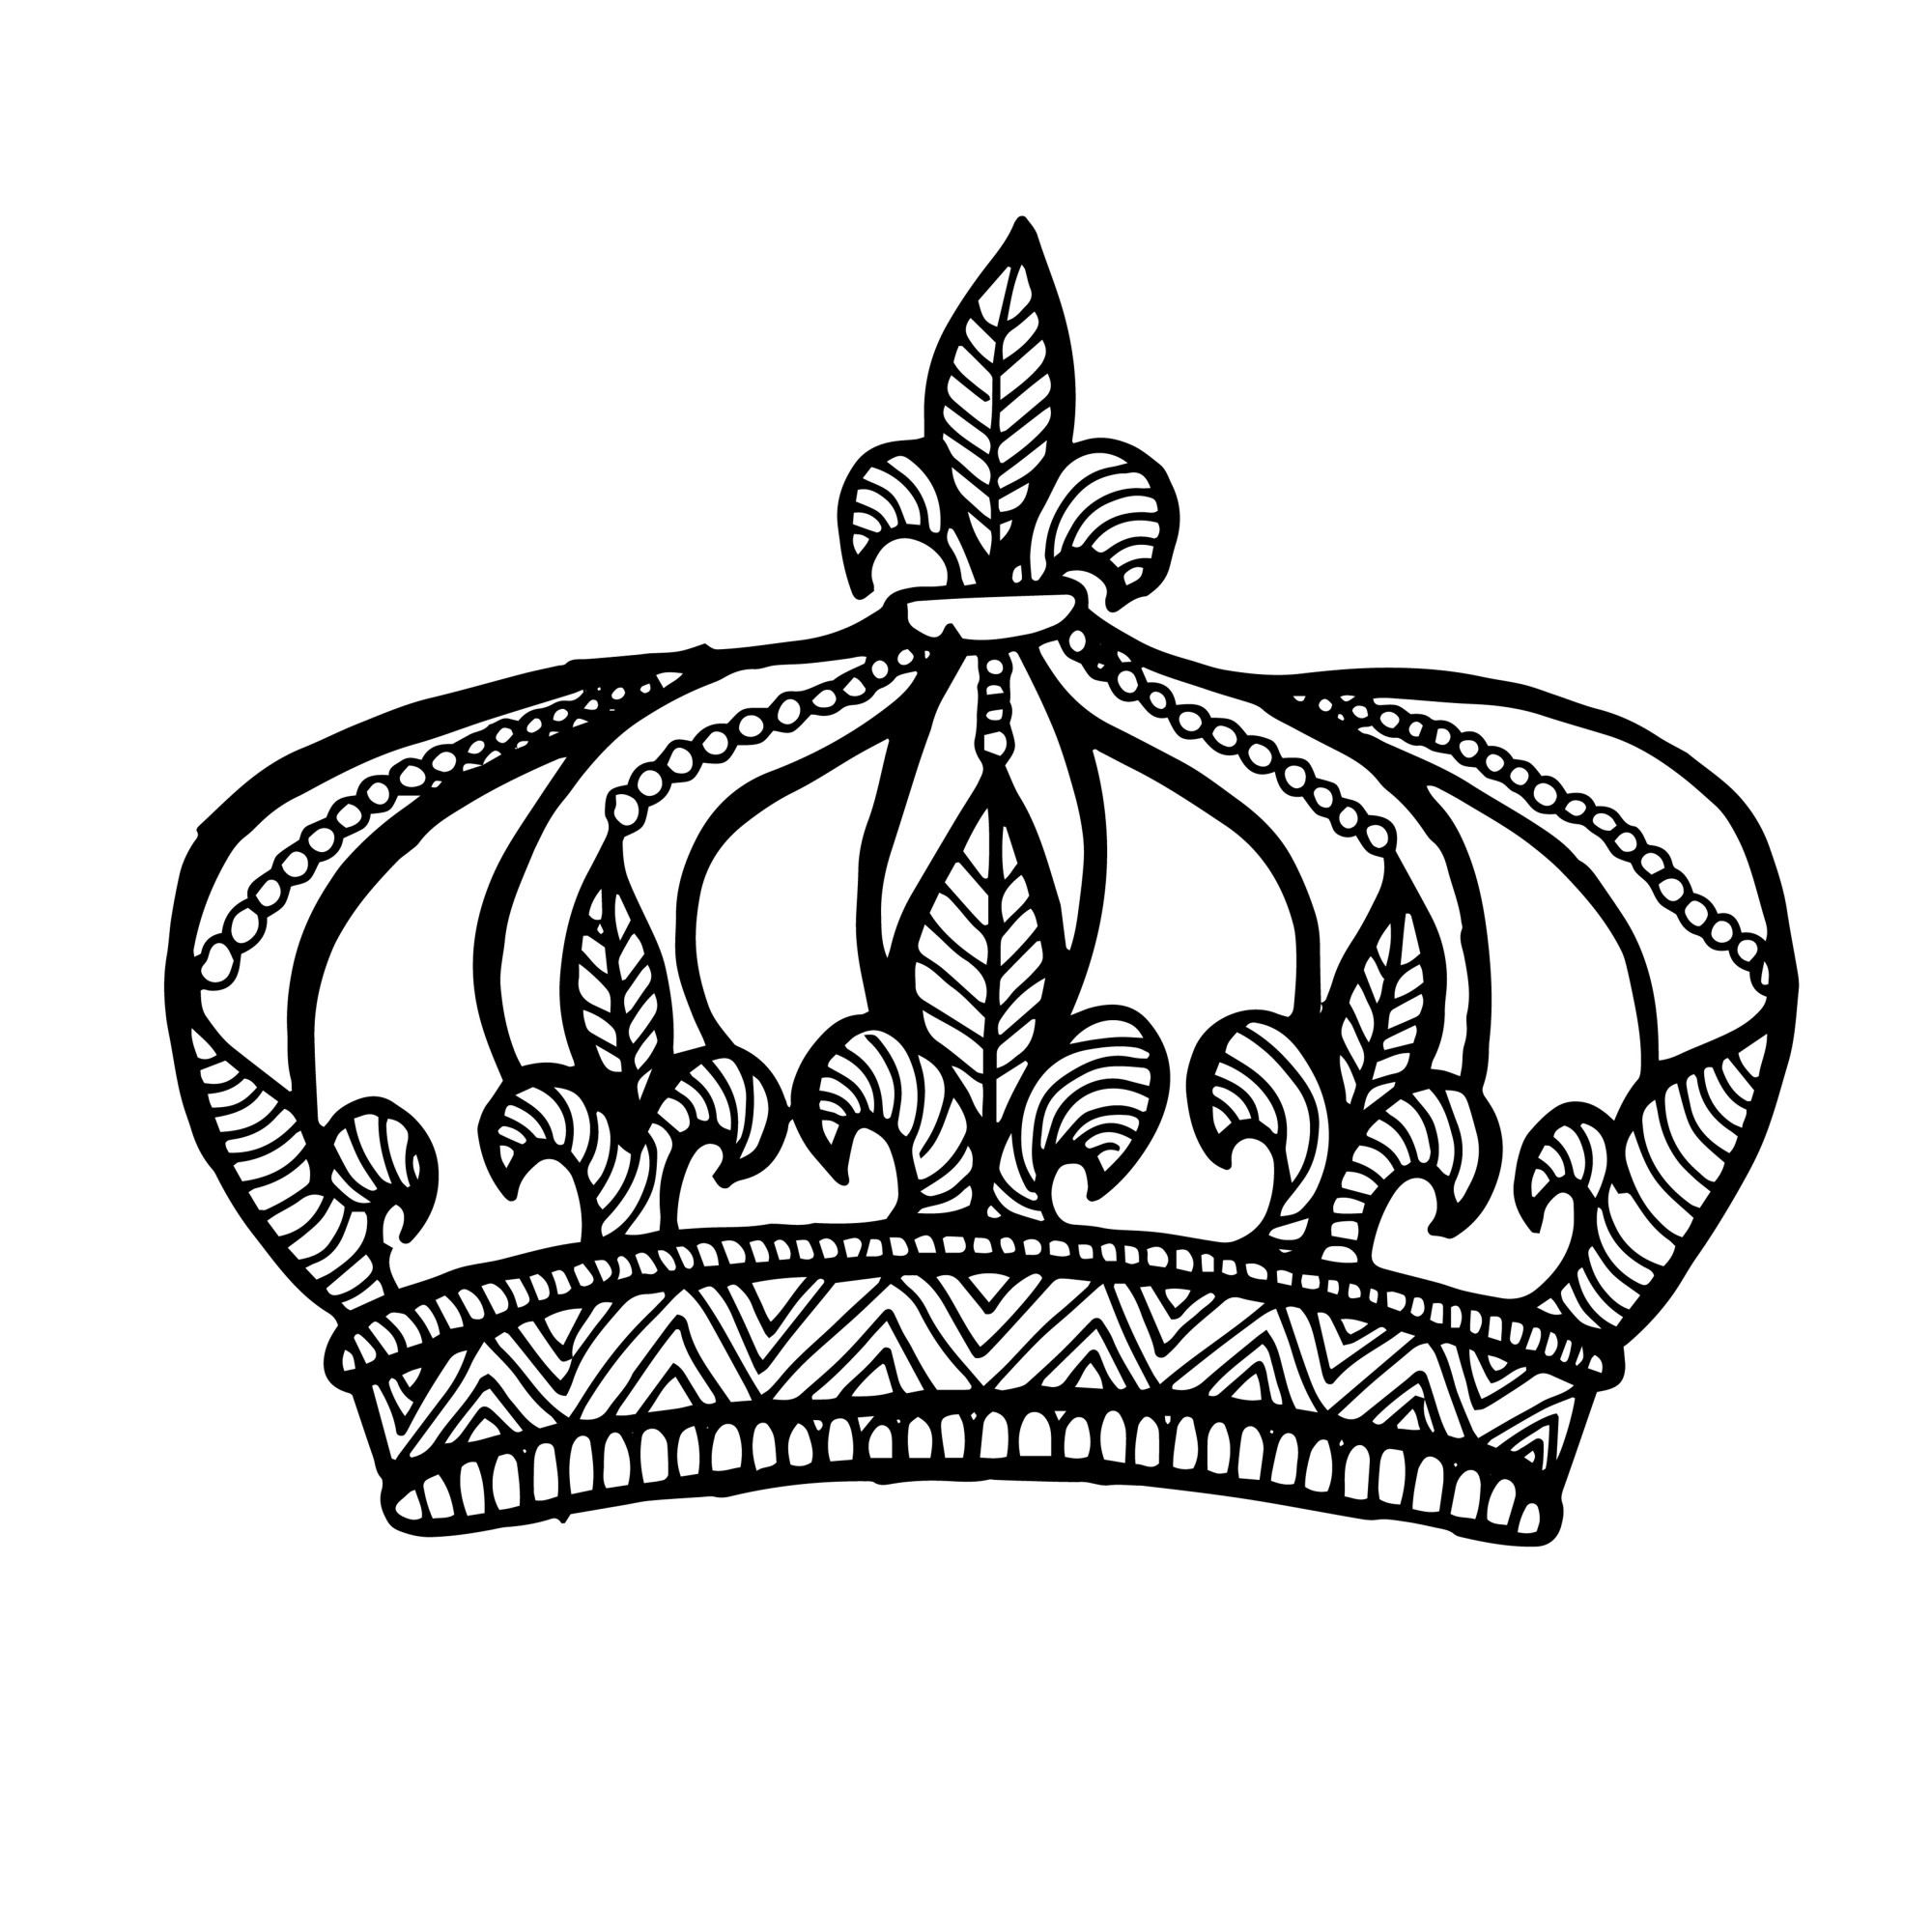 Beautiful Hand Drawn Black and white Crown